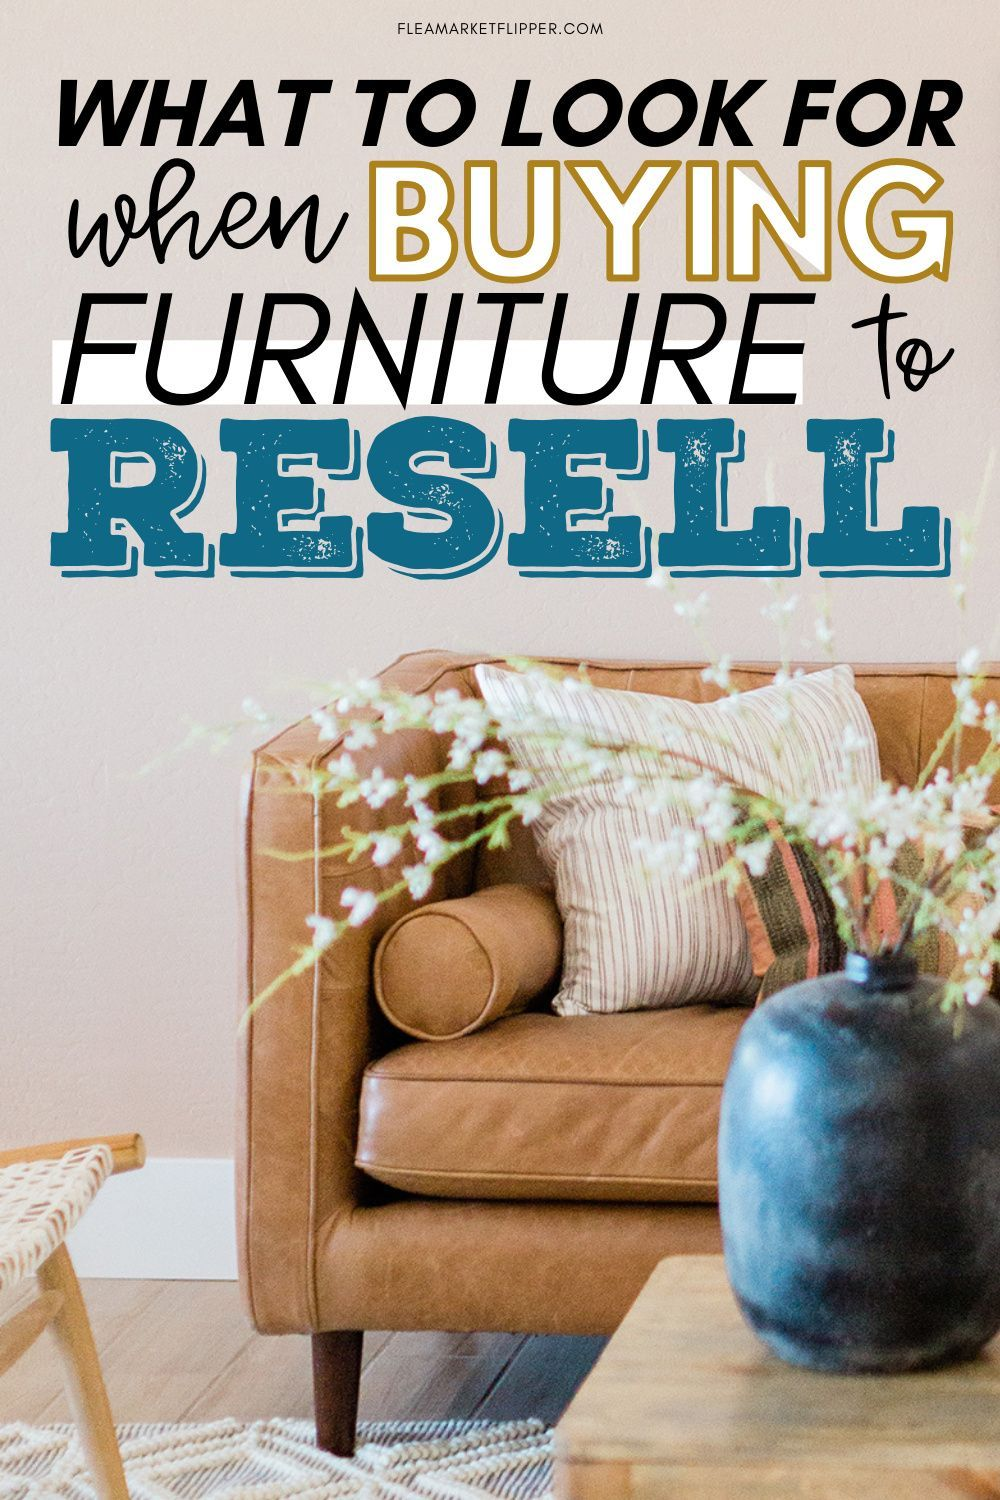 How To Sell Used Furniture Online To Make The Most Profit In 2021 Sell Used Furniture Flipping Furniture Things To Sell